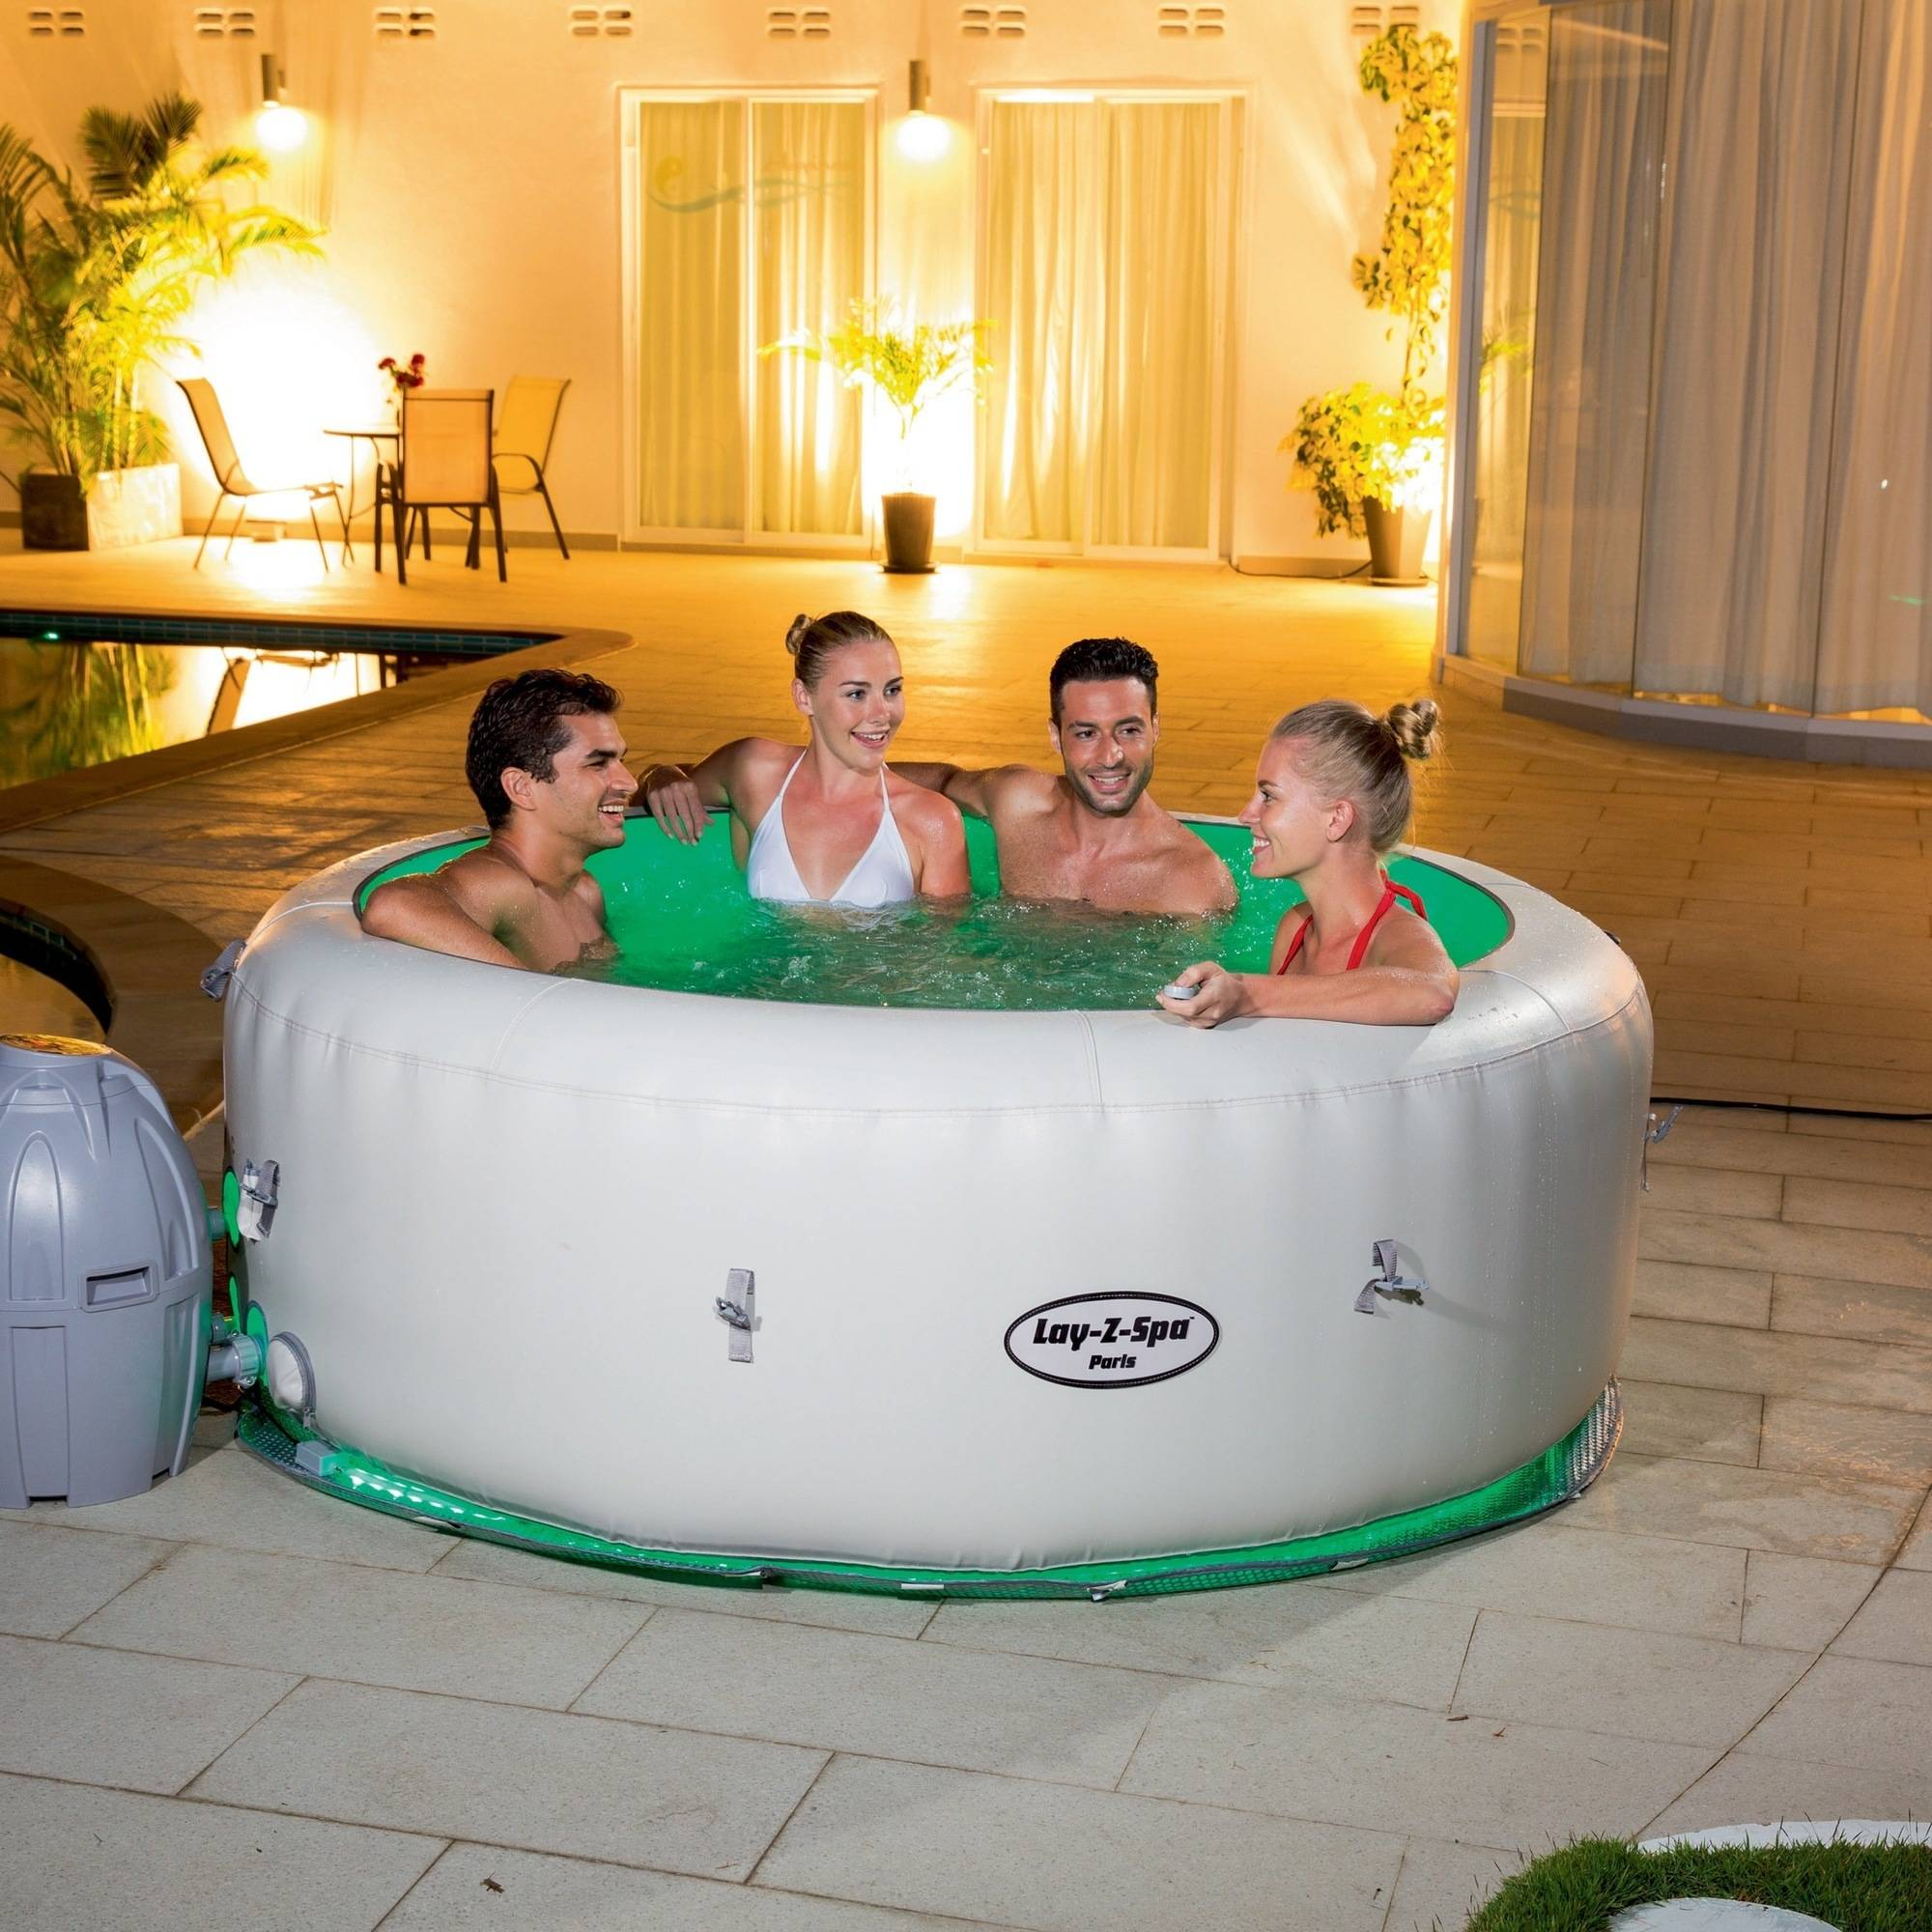 Lay-Z-Spa Paris Inflatable 4-6 Person Spa with LED Light and AirJet Massage System